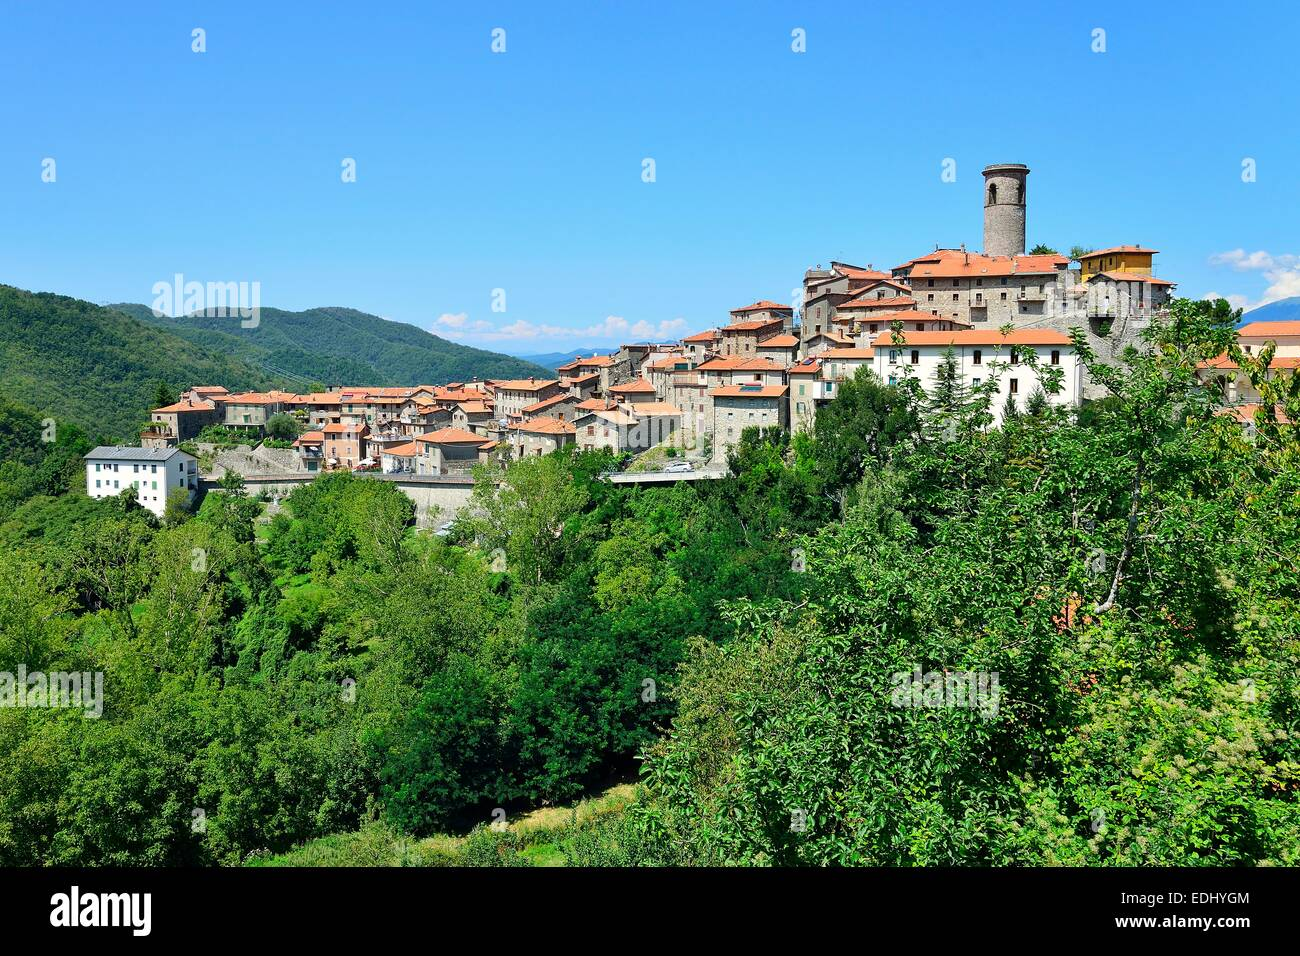 The mountain village of Minucciano in the Apuan Alps, Garfagnana, Province of Lucca, Tuscany, Italy - Stock Image